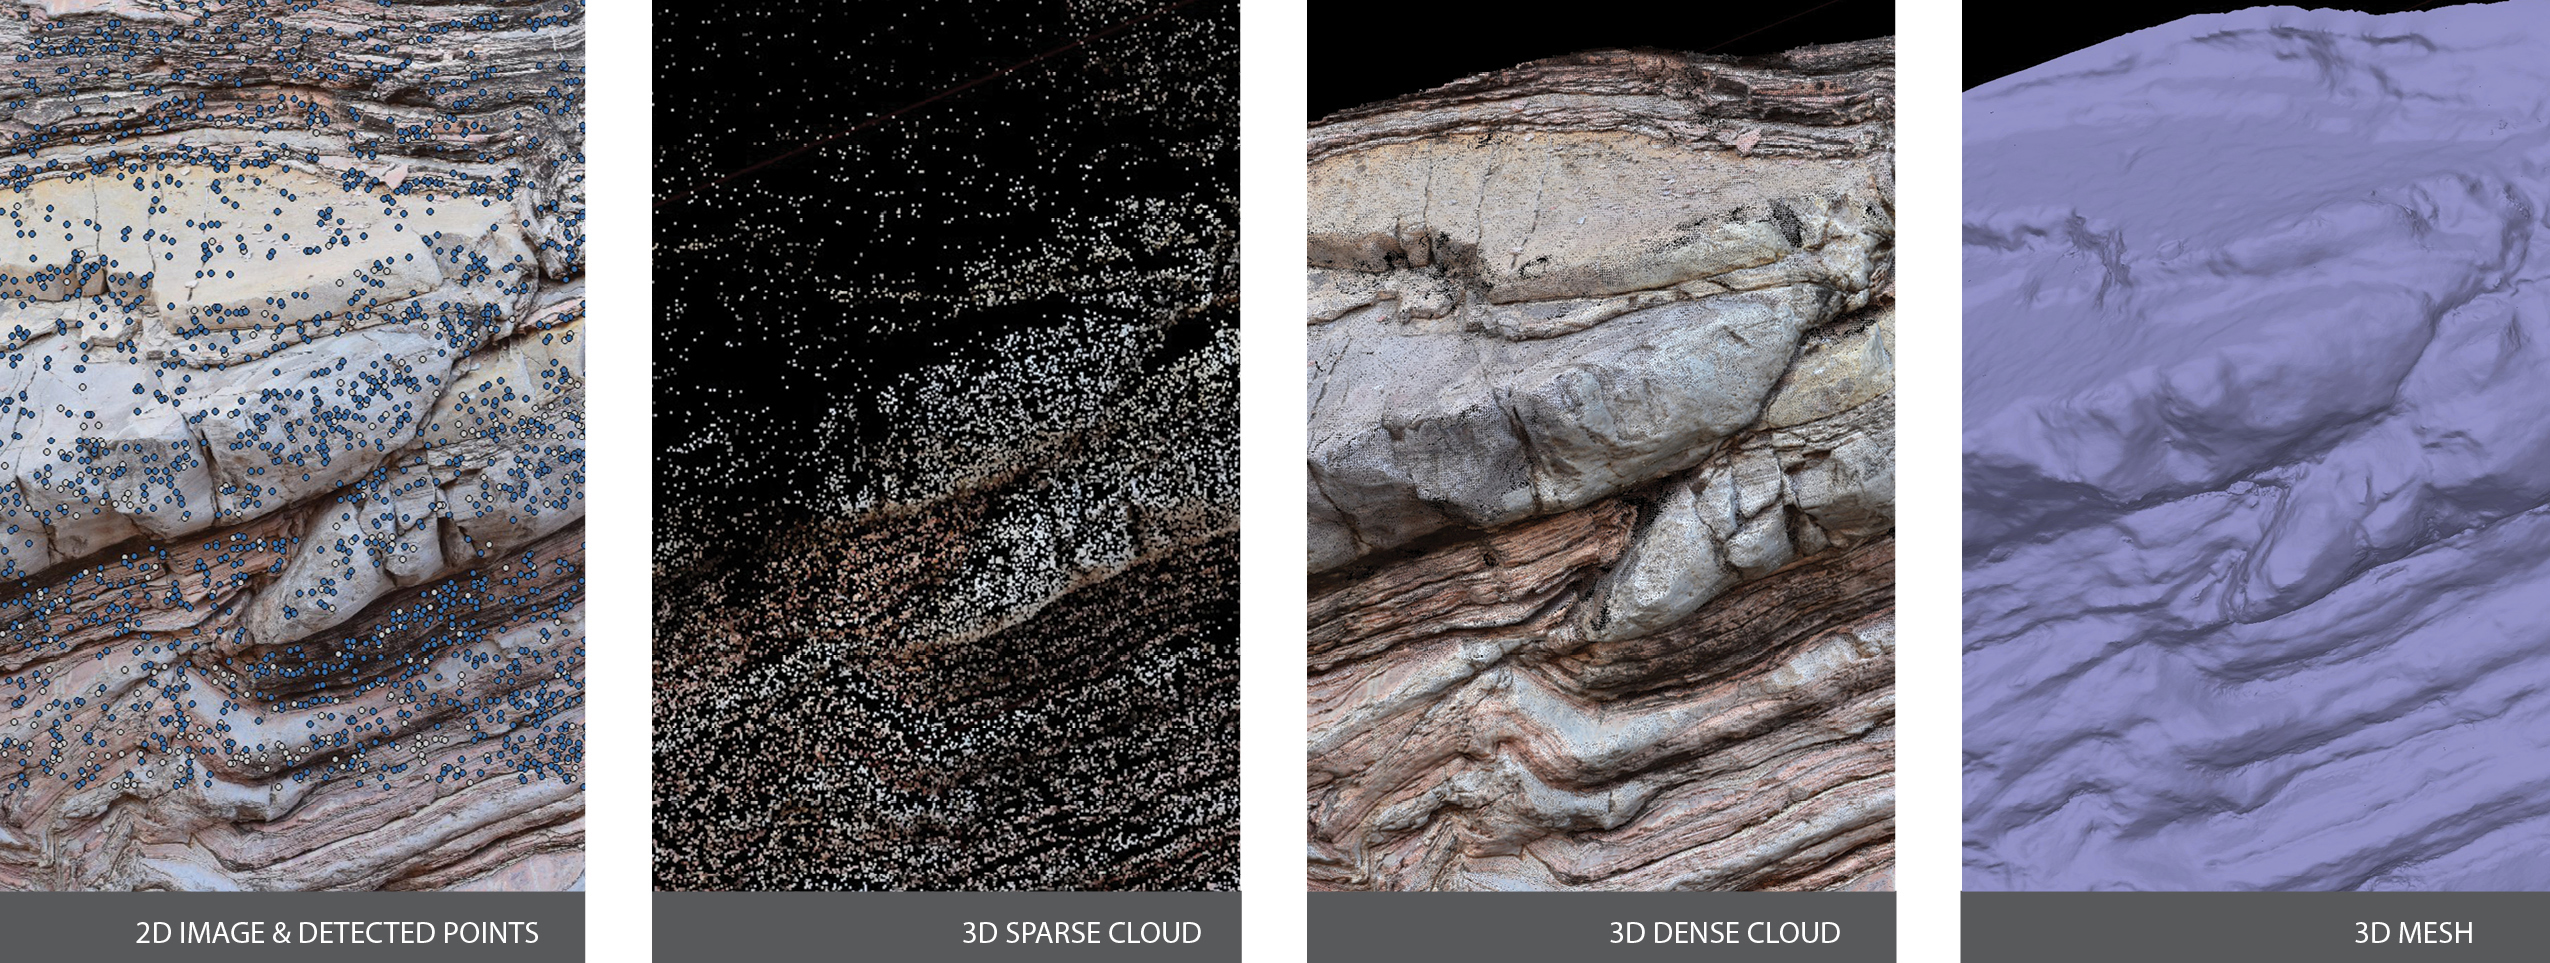 2D and 3D images of rock features with computer detection points